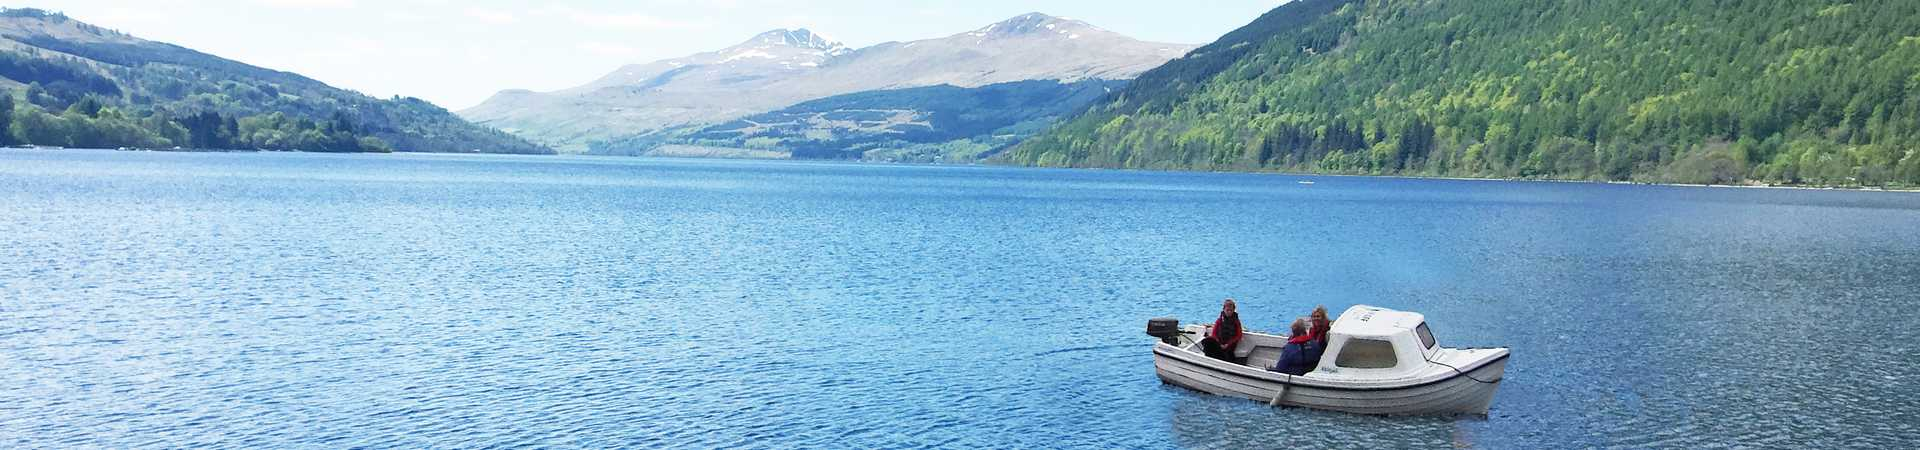 people on a boat excursion on loch tay with incredible views